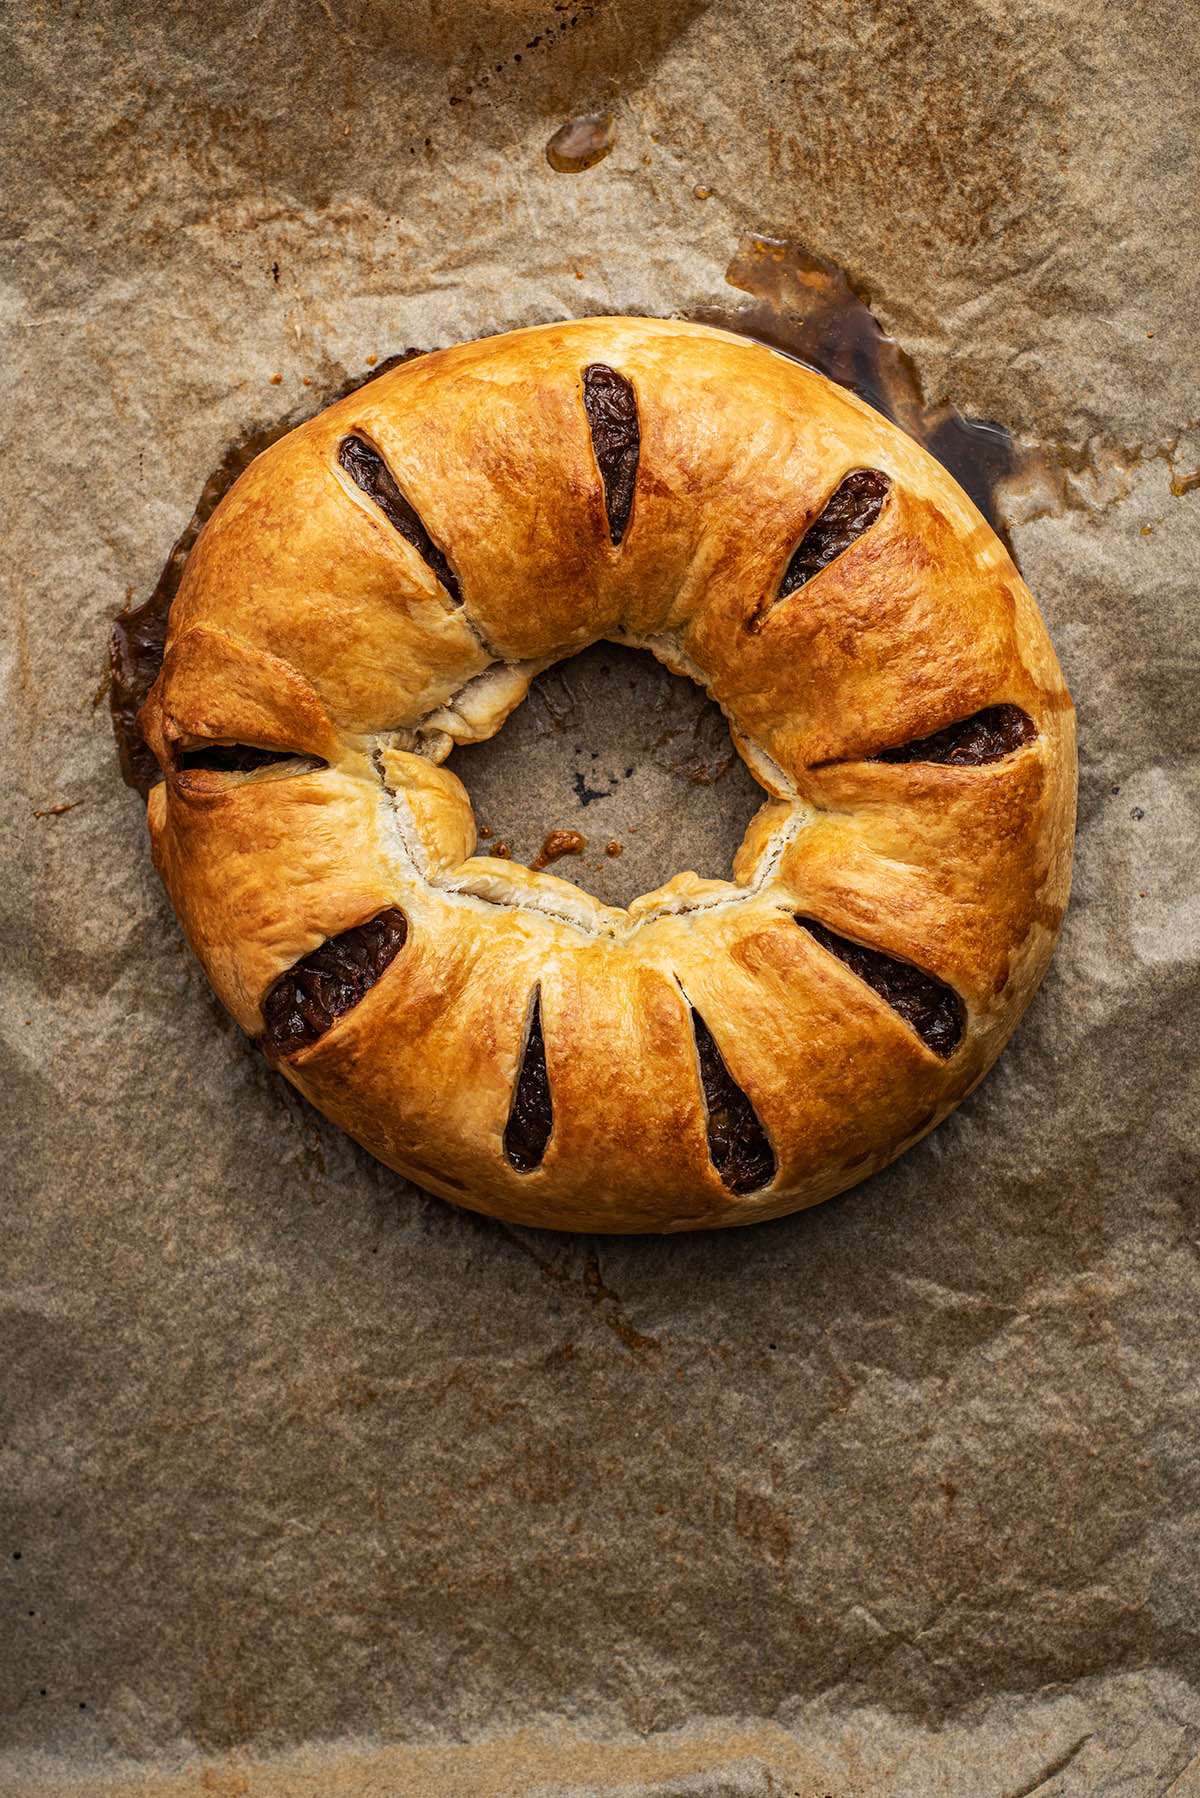 Baked wreath on parchment paper.